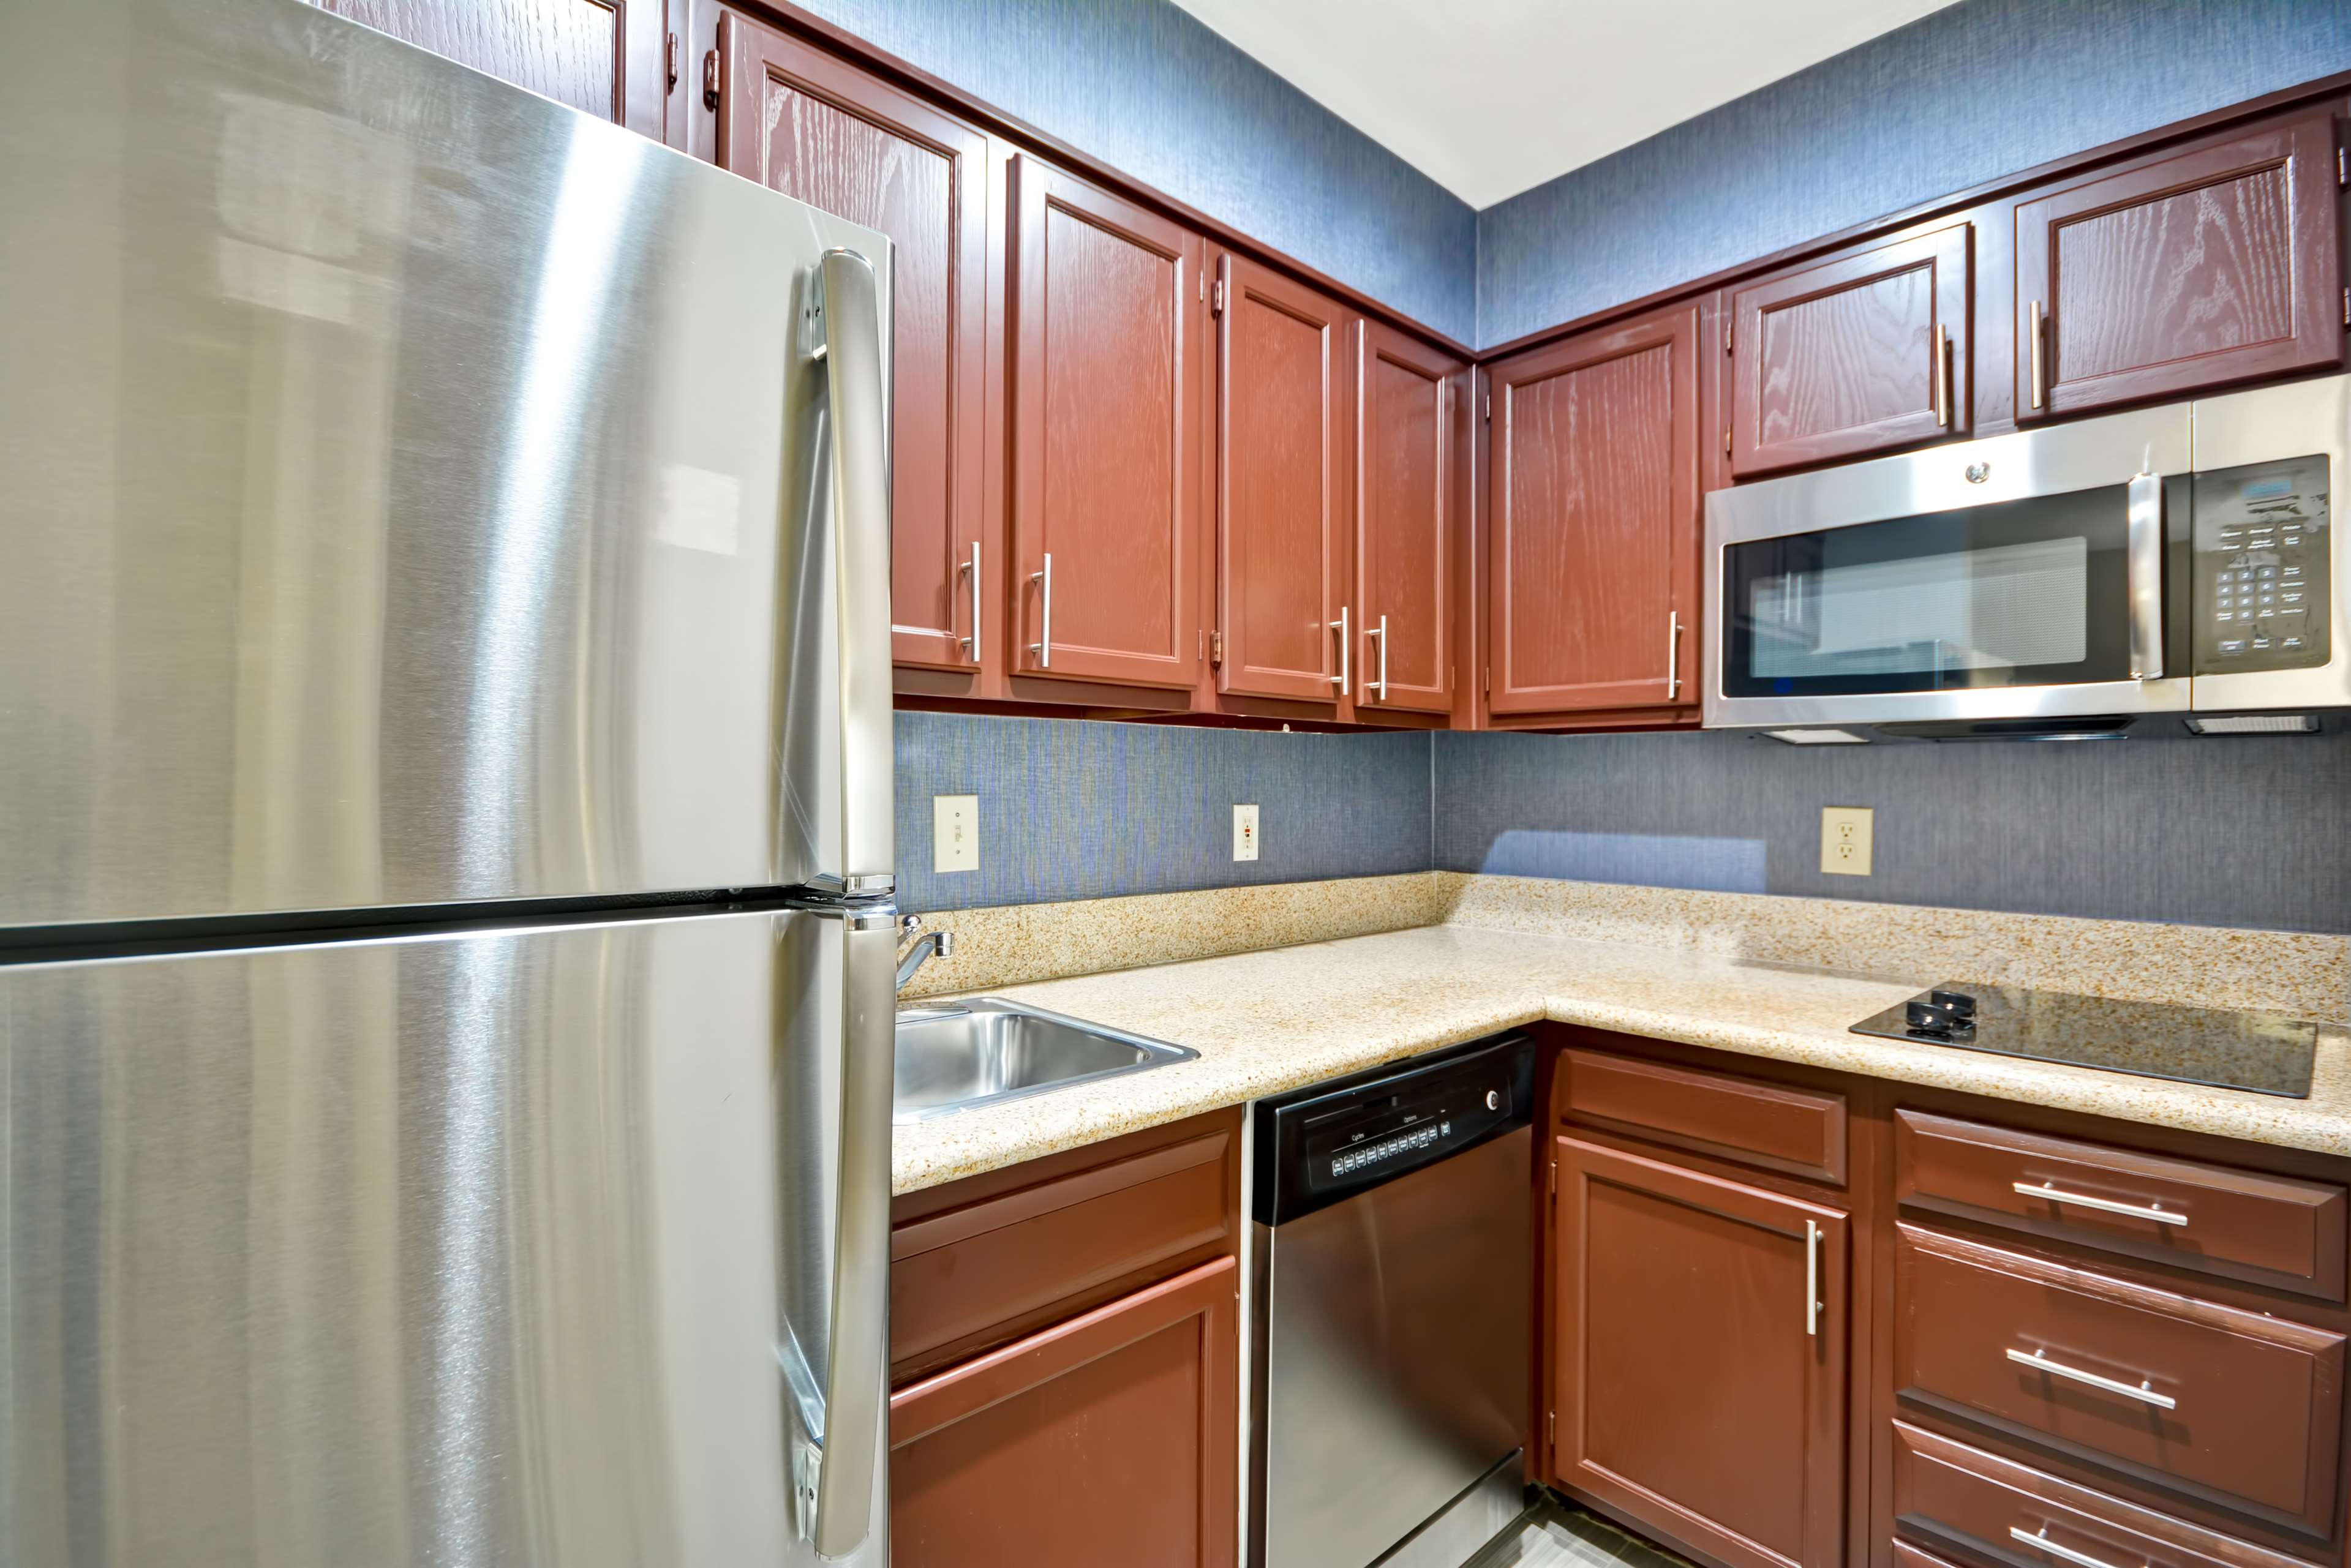 Homewood Suites by Hilton Dallas-Lewisville image 26